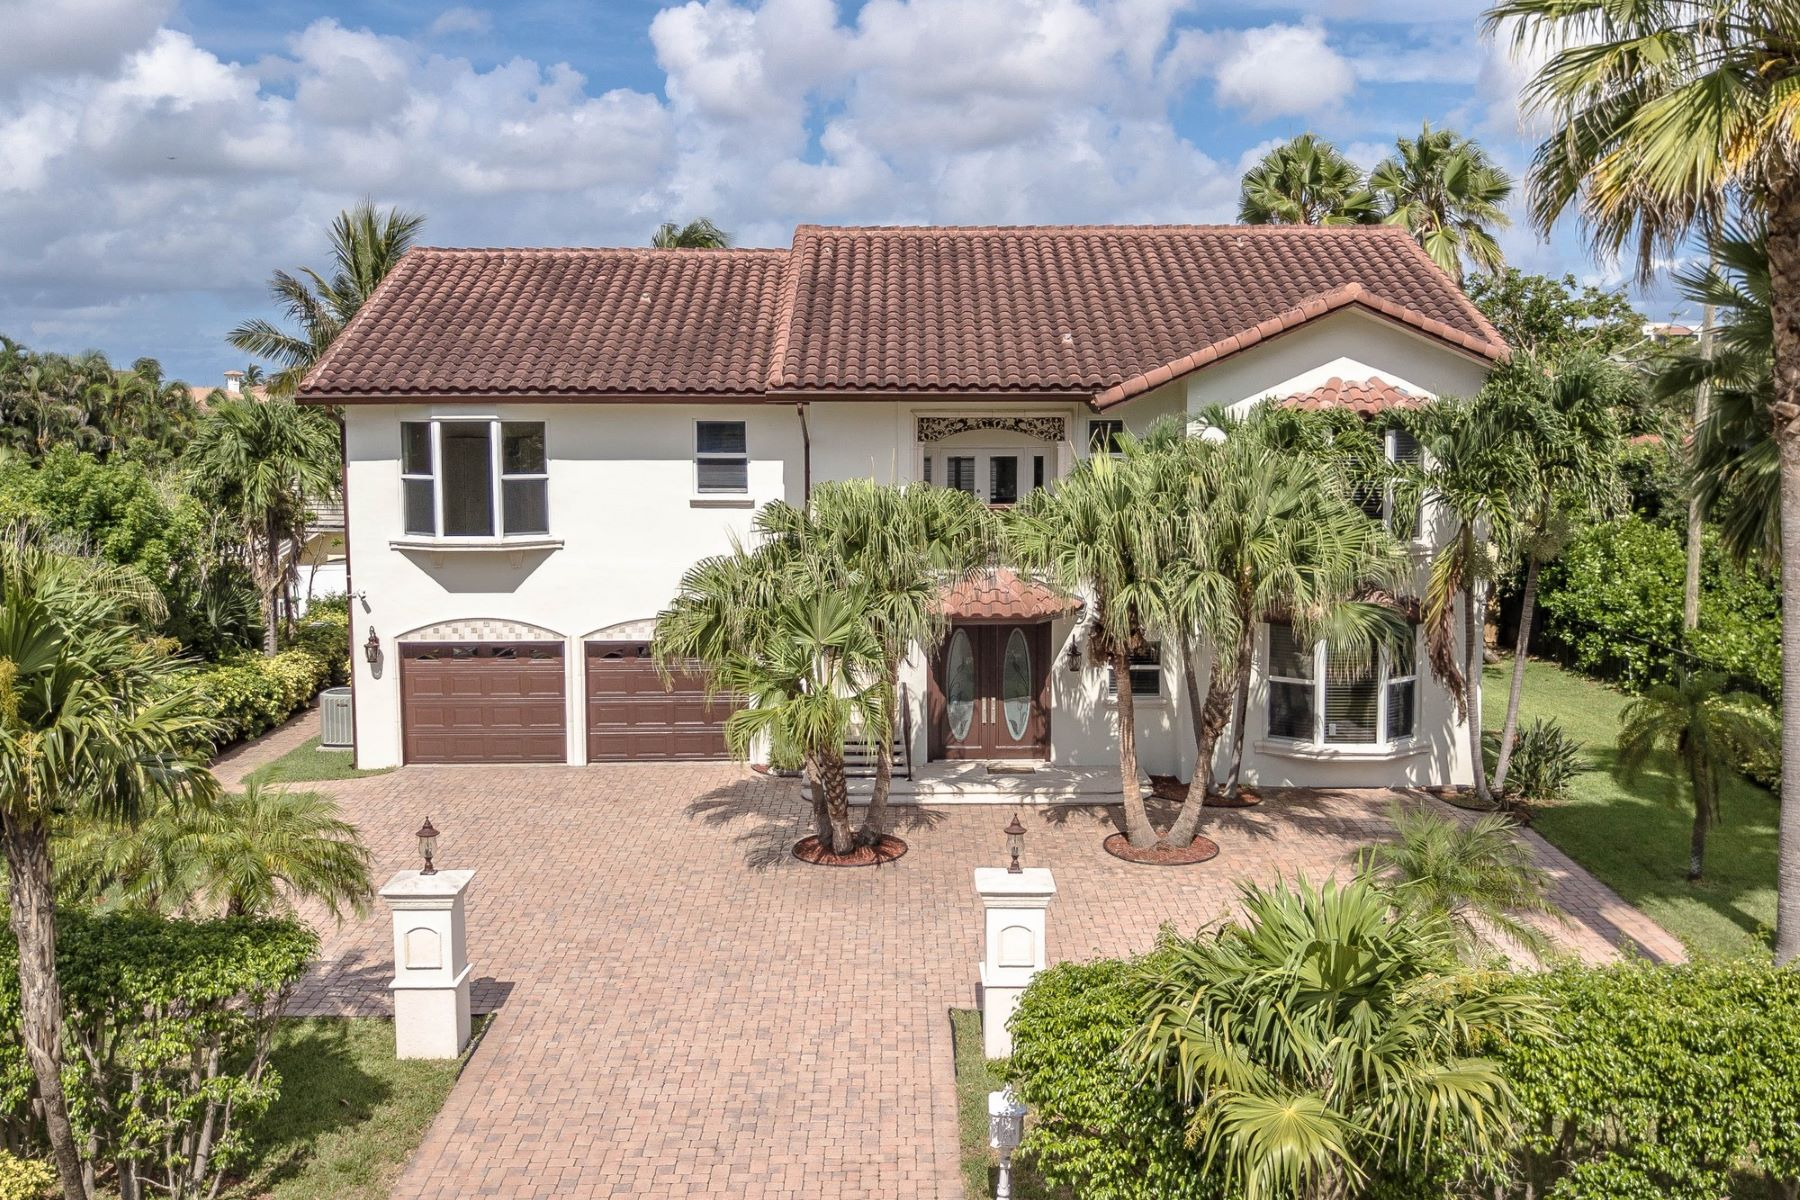 Single Family Home for Active at 4108 S Ocean Blvd , Highland Beach, FL 33487 4108 S Ocean Blvd Highland Beach, Florida 33487 United States